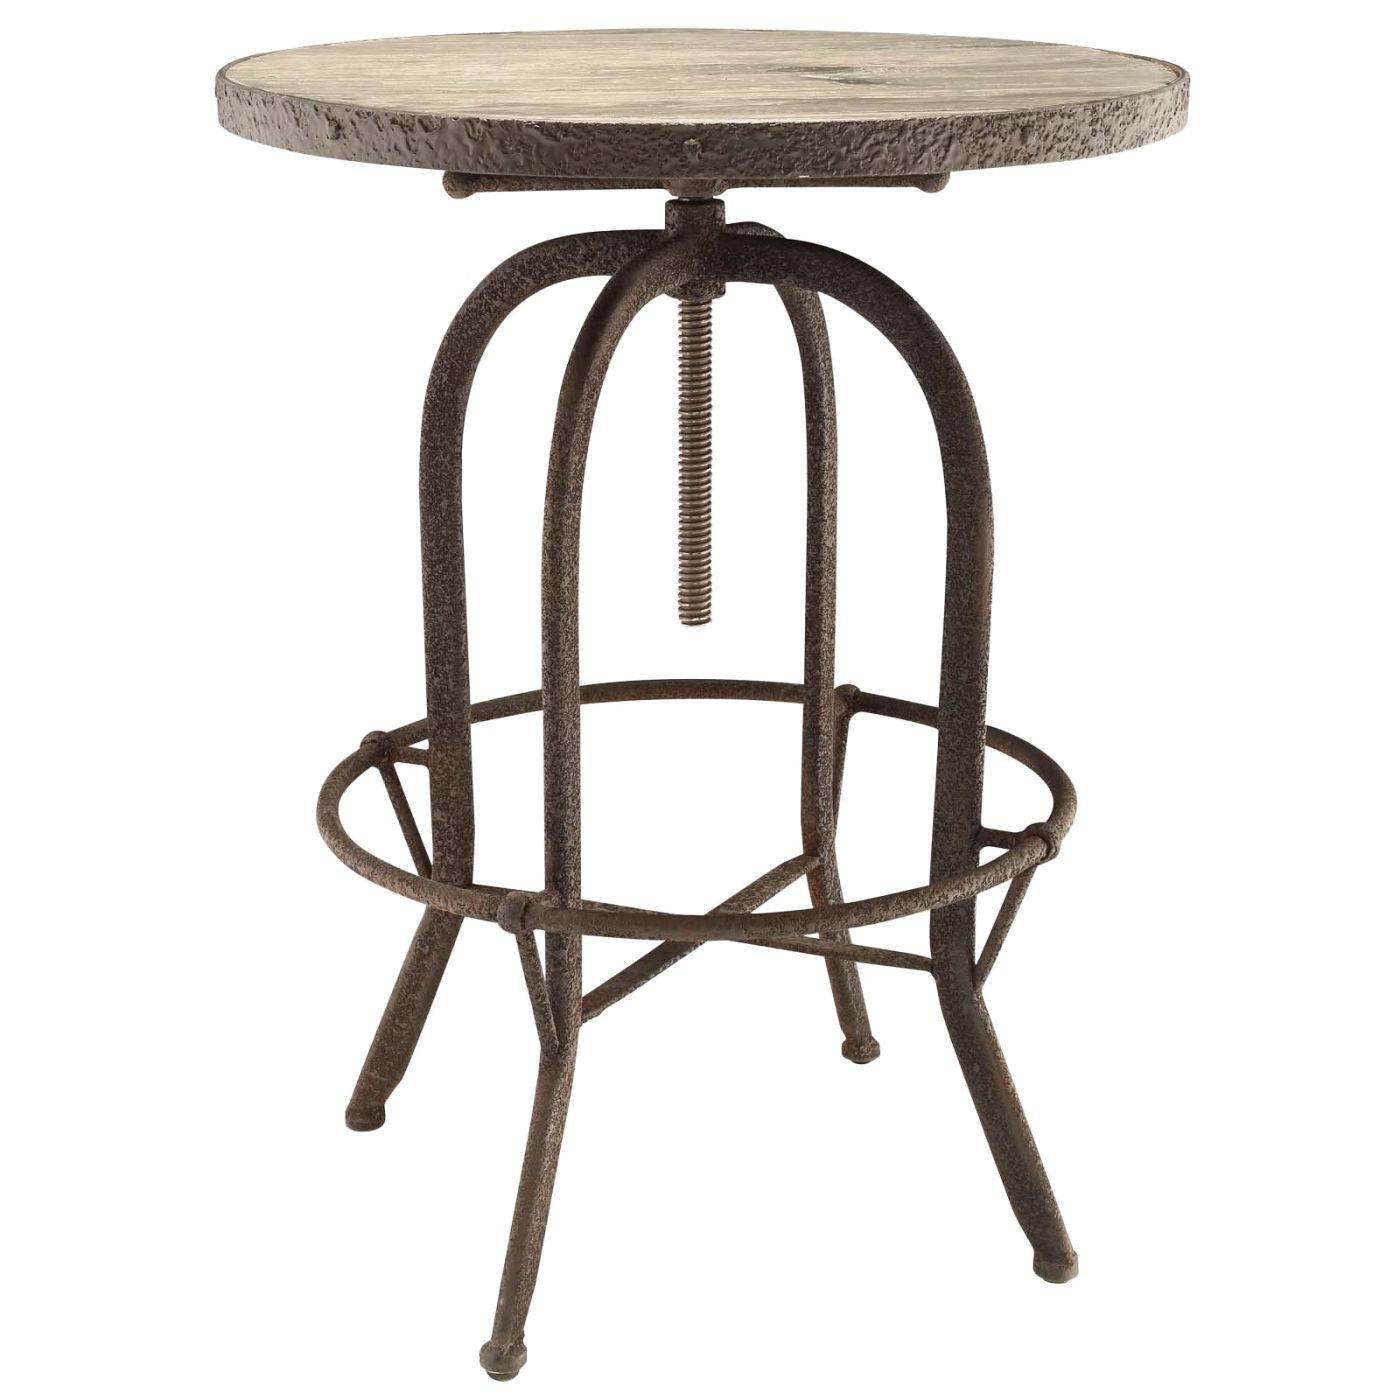 Picture of: Modway Bar Tables On Sale Eei 1200 Brn Sylvan Industrial Modern Wood Top Bar Table Only Only 387 05 At Contemporary Furniture Warehouse